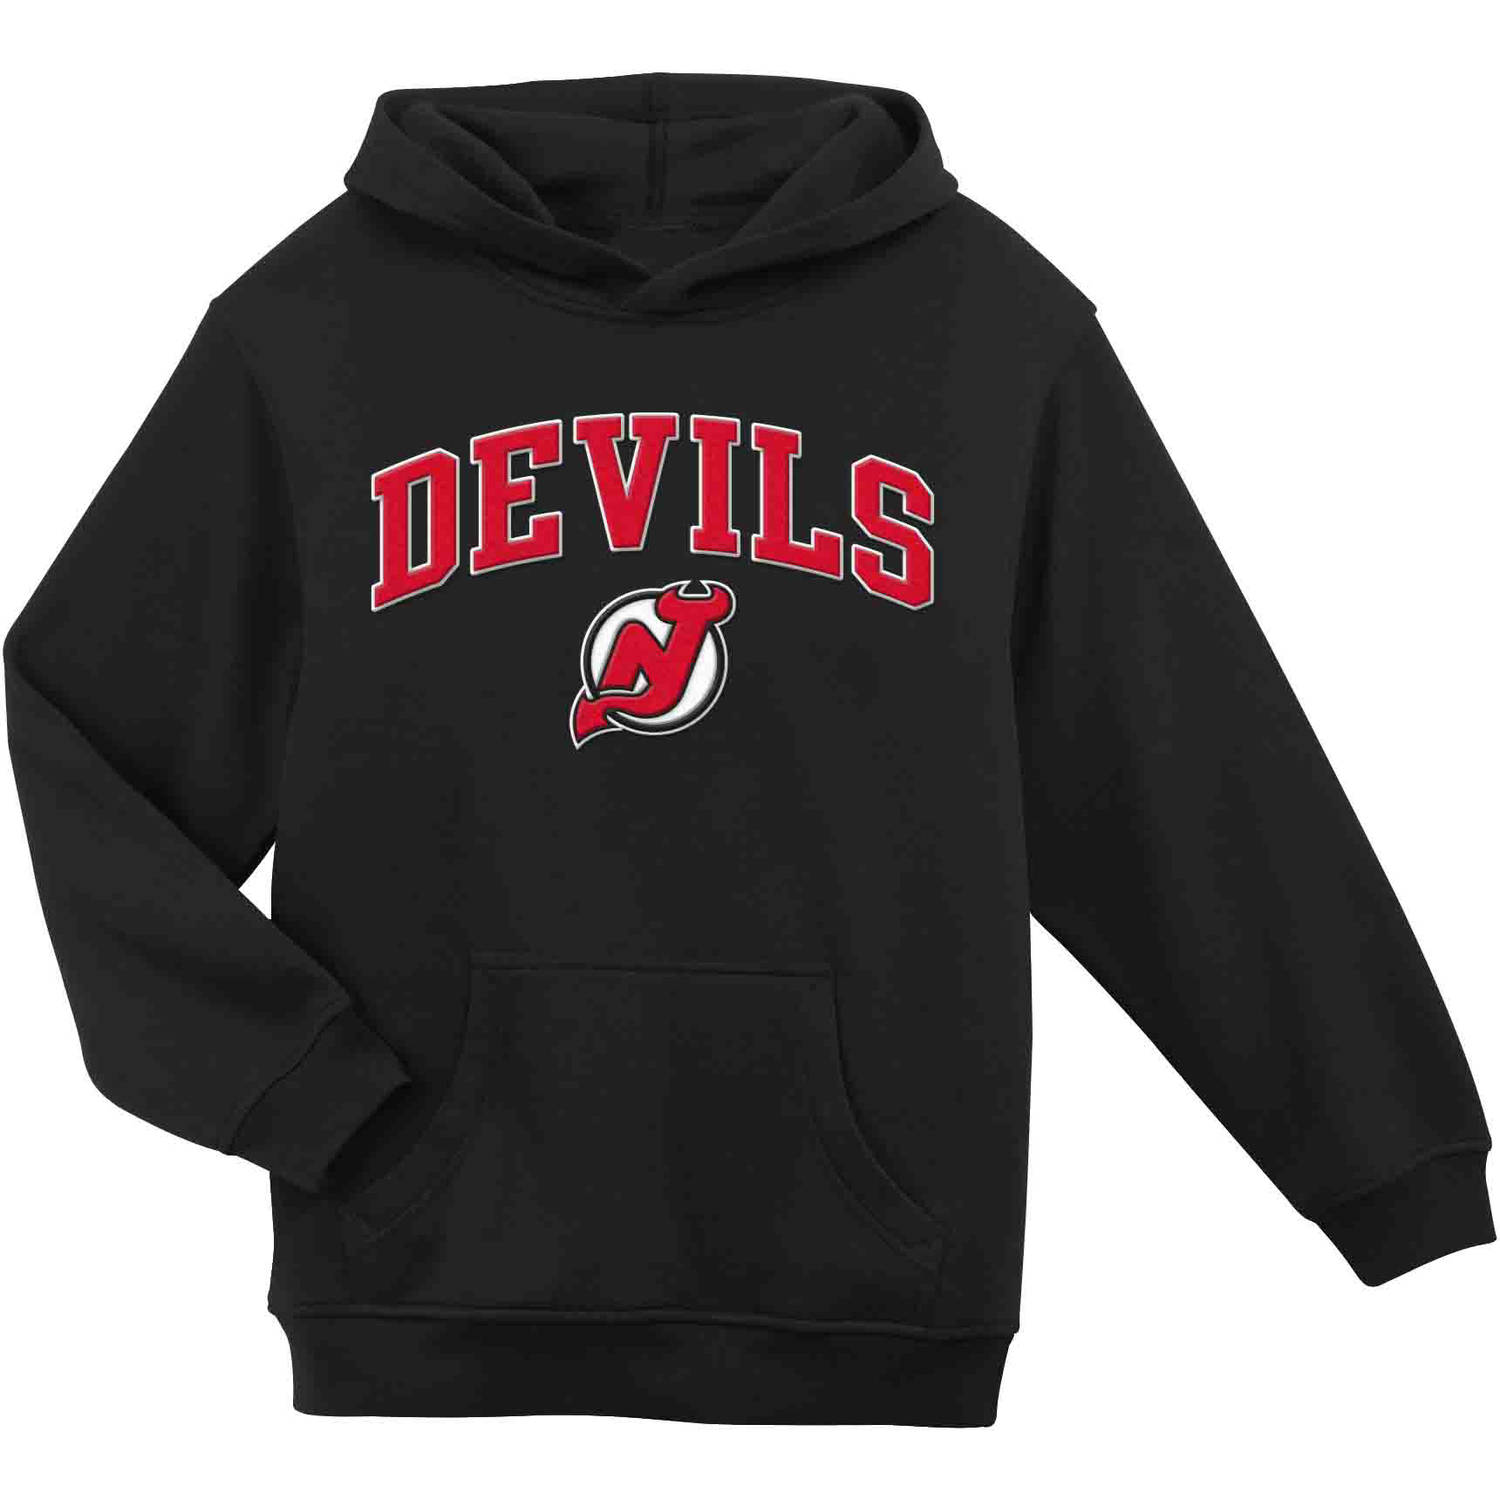 NHL New Jersey Devils Youth Team Fleece Hoodie